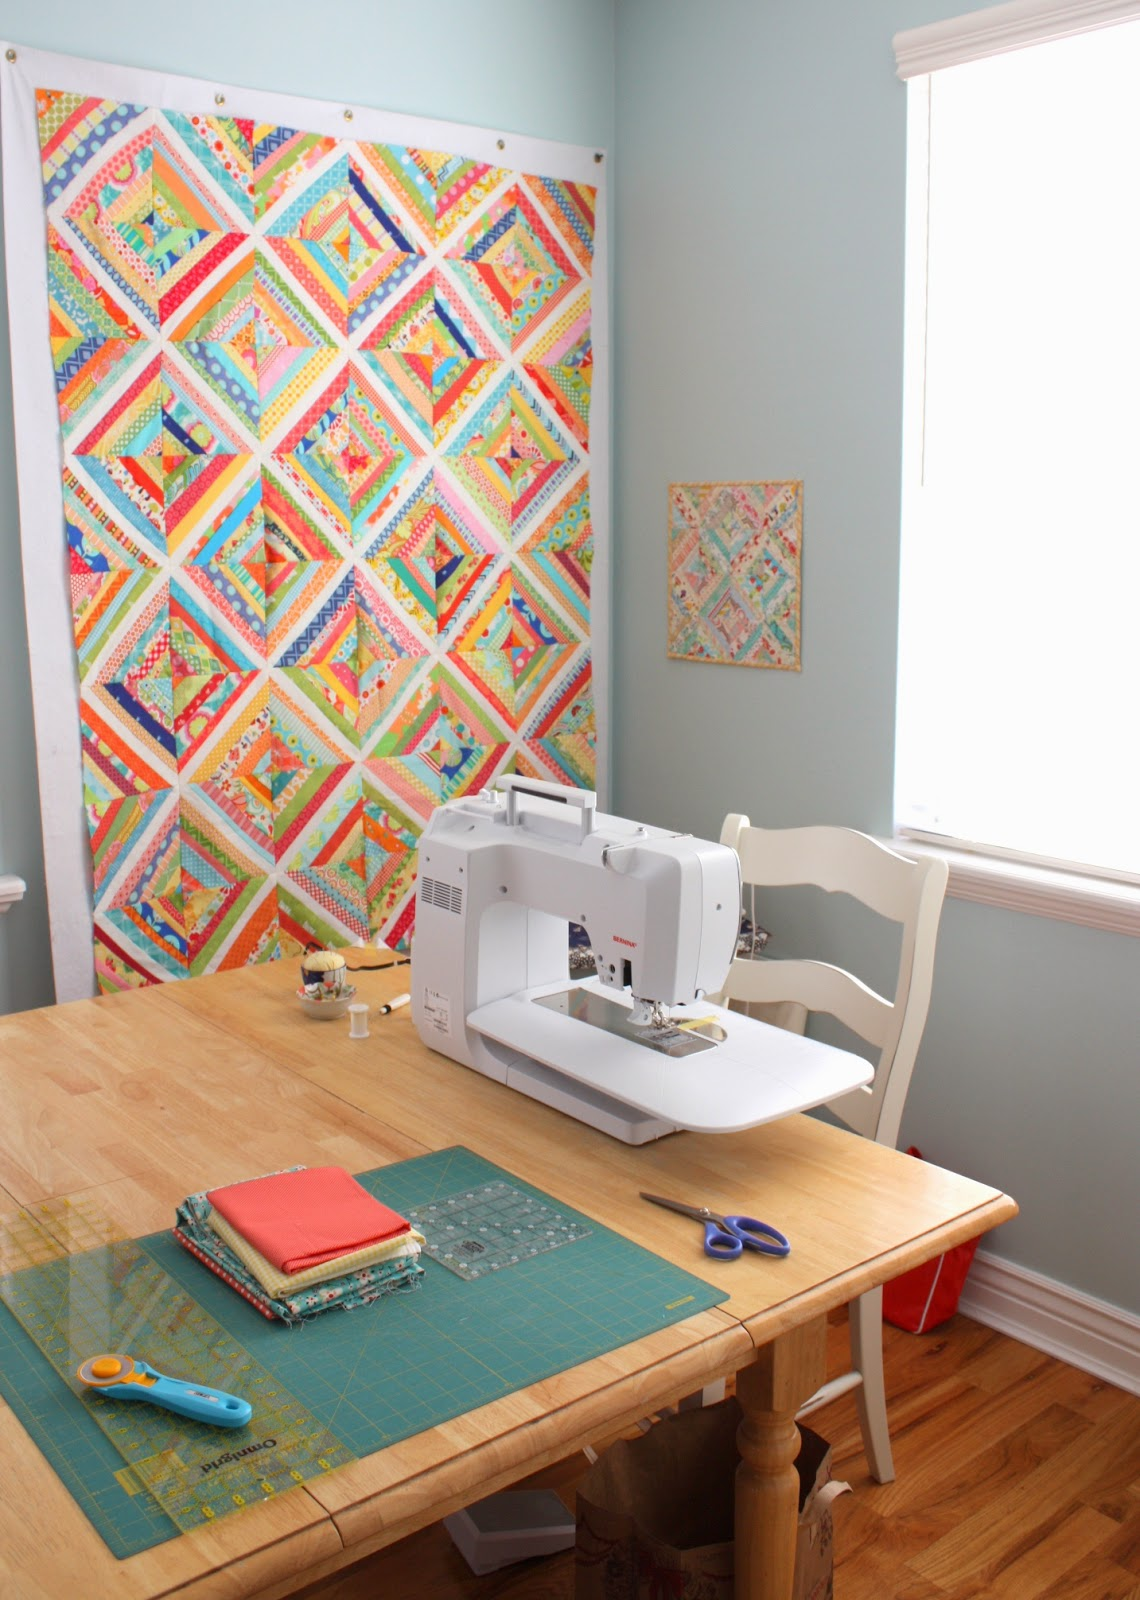 Pretty new sewing space diary of a quilter a quilt blog for Dining room quilter